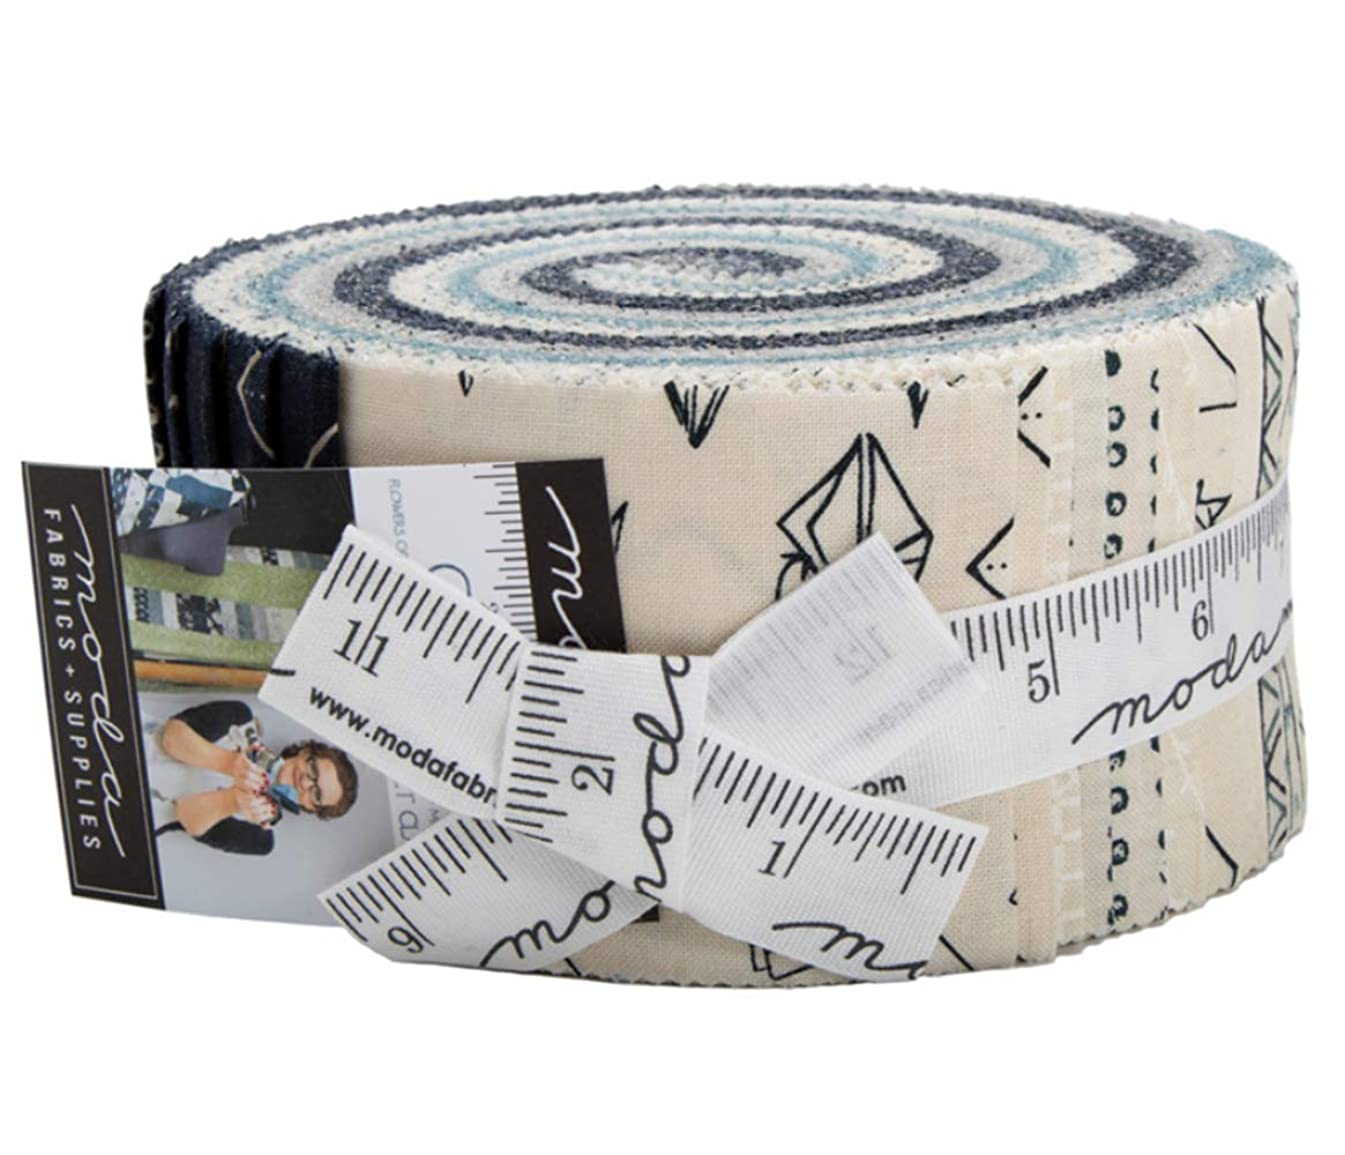 Origami Jelly Roll 40 2.5-inch Strips by Janet Clare for Moda Fabrics